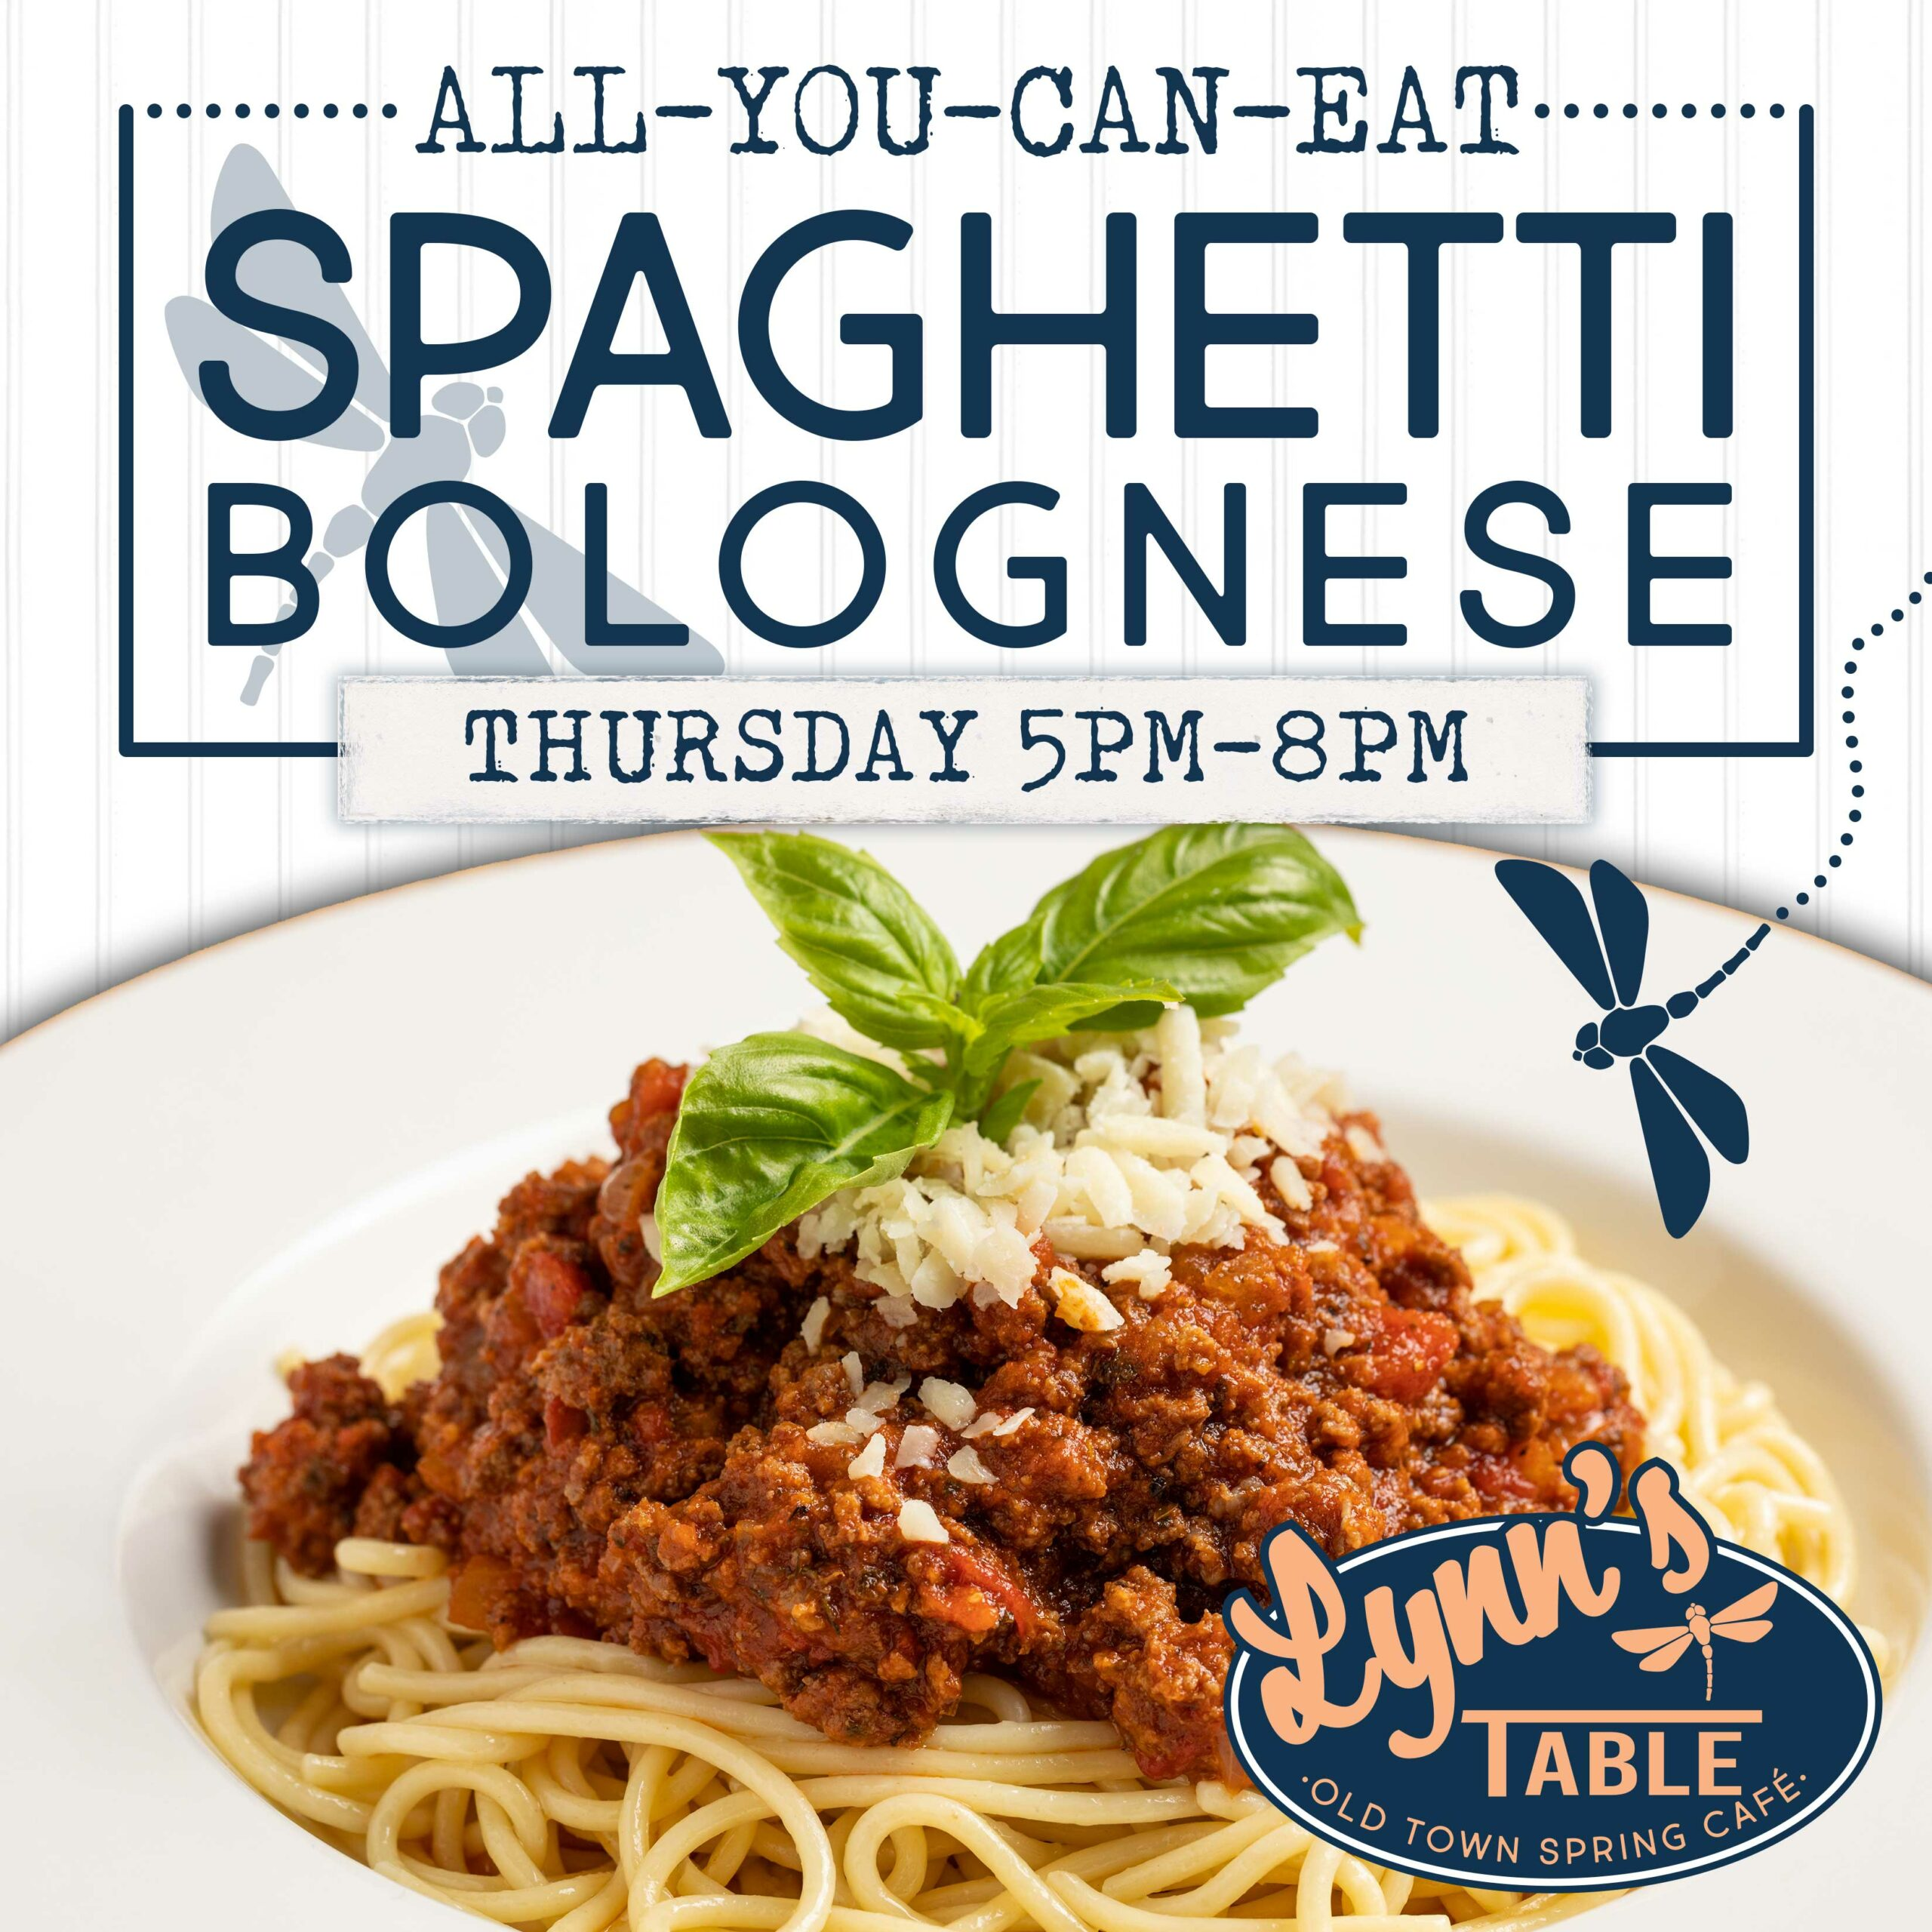 Thursday special - All you can eat spaghetti bolognese. 5pm to 8pm